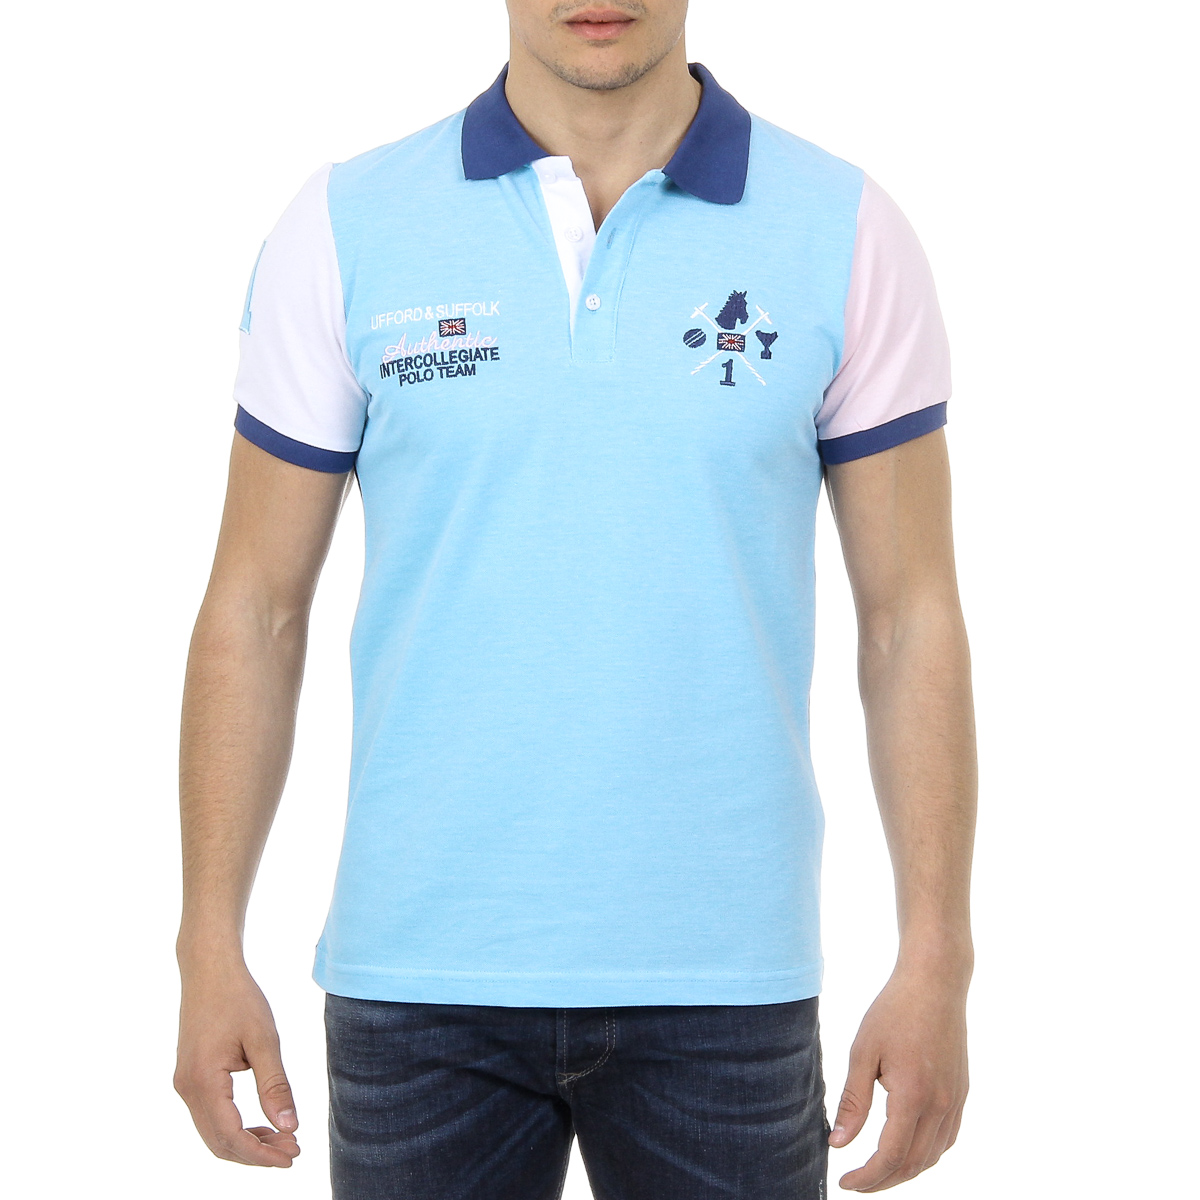 Primary image for Ufford & Suffolk Polo Club Mens Polo Short Sleeves US009 TURQUOISE